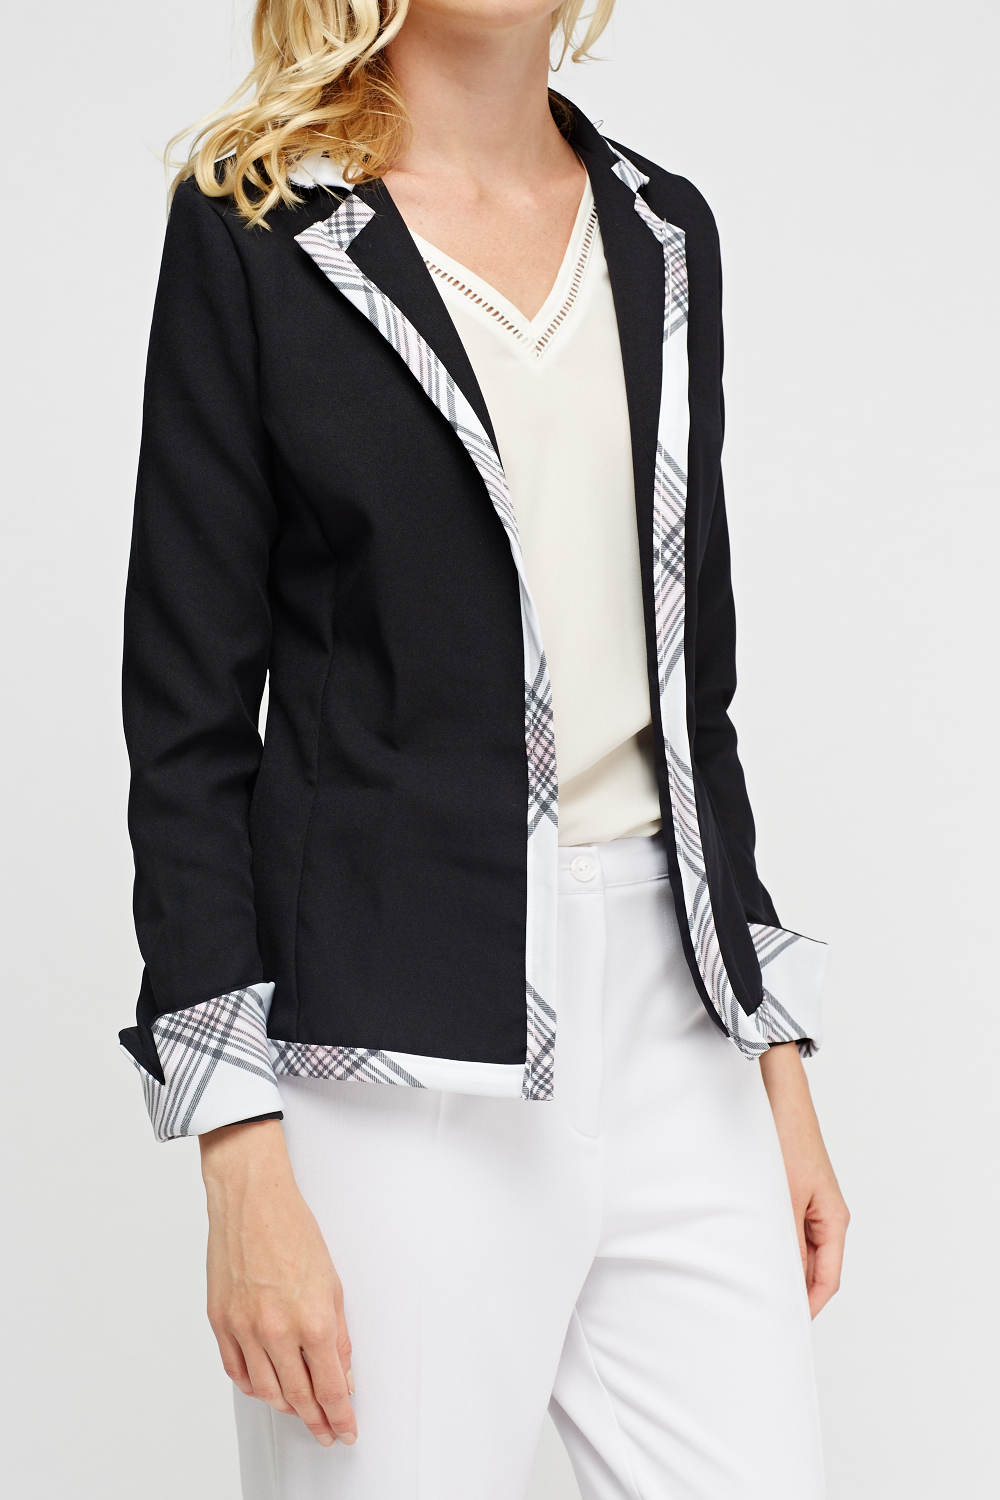 Find a great selection of women's blazers & jackets at allshop-eqe0tr01.cf Shop top brands like Vince Camuto, Topshop, Lafayette and more. Free shipping and returns.